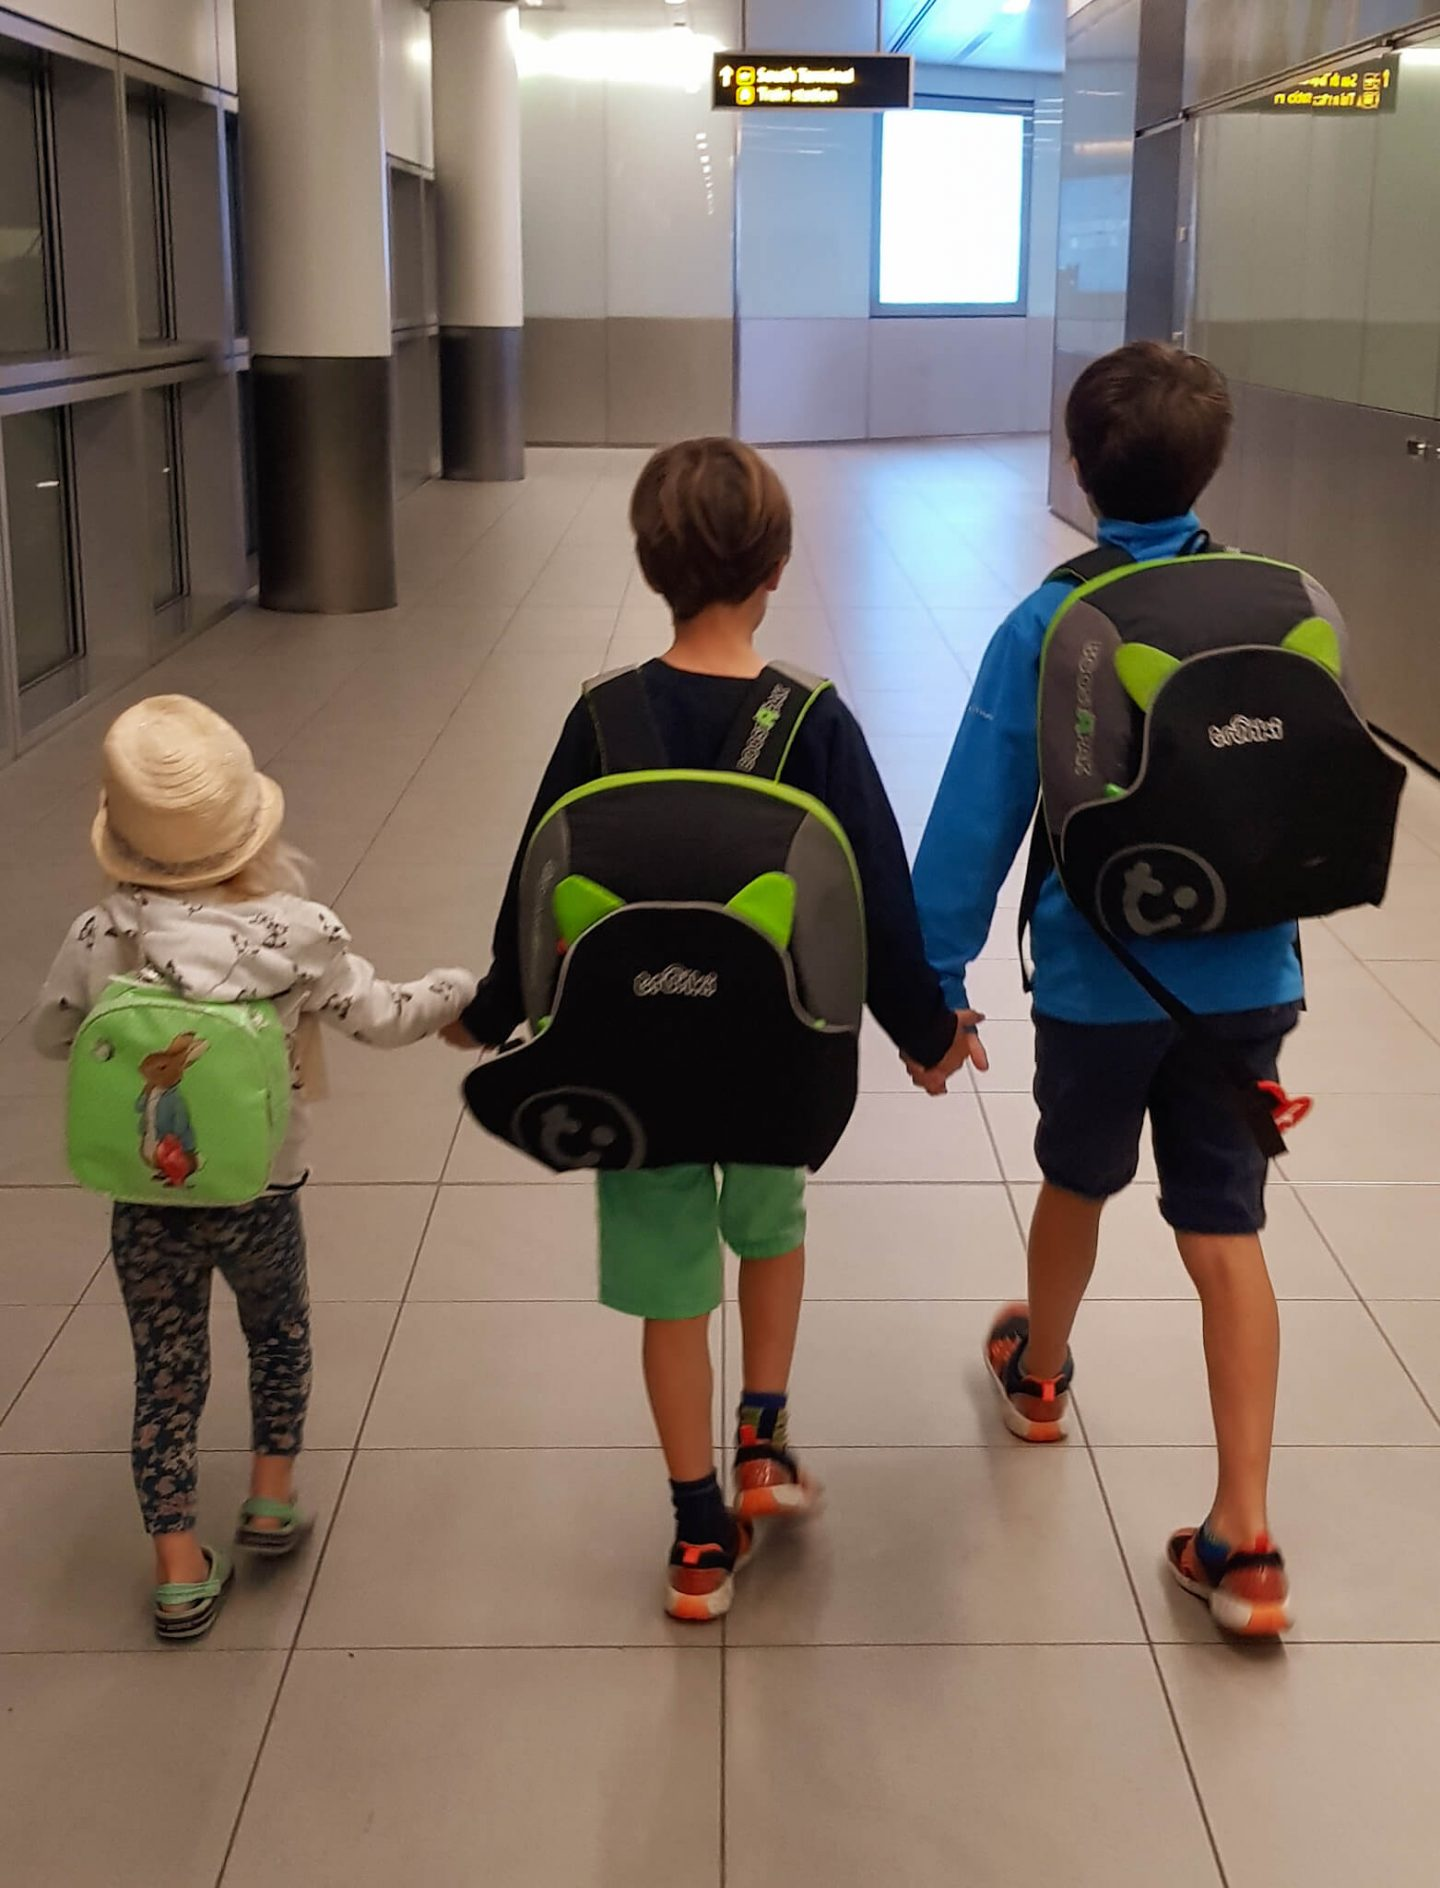 Airports with Kids: Ideas to Ease the Stress